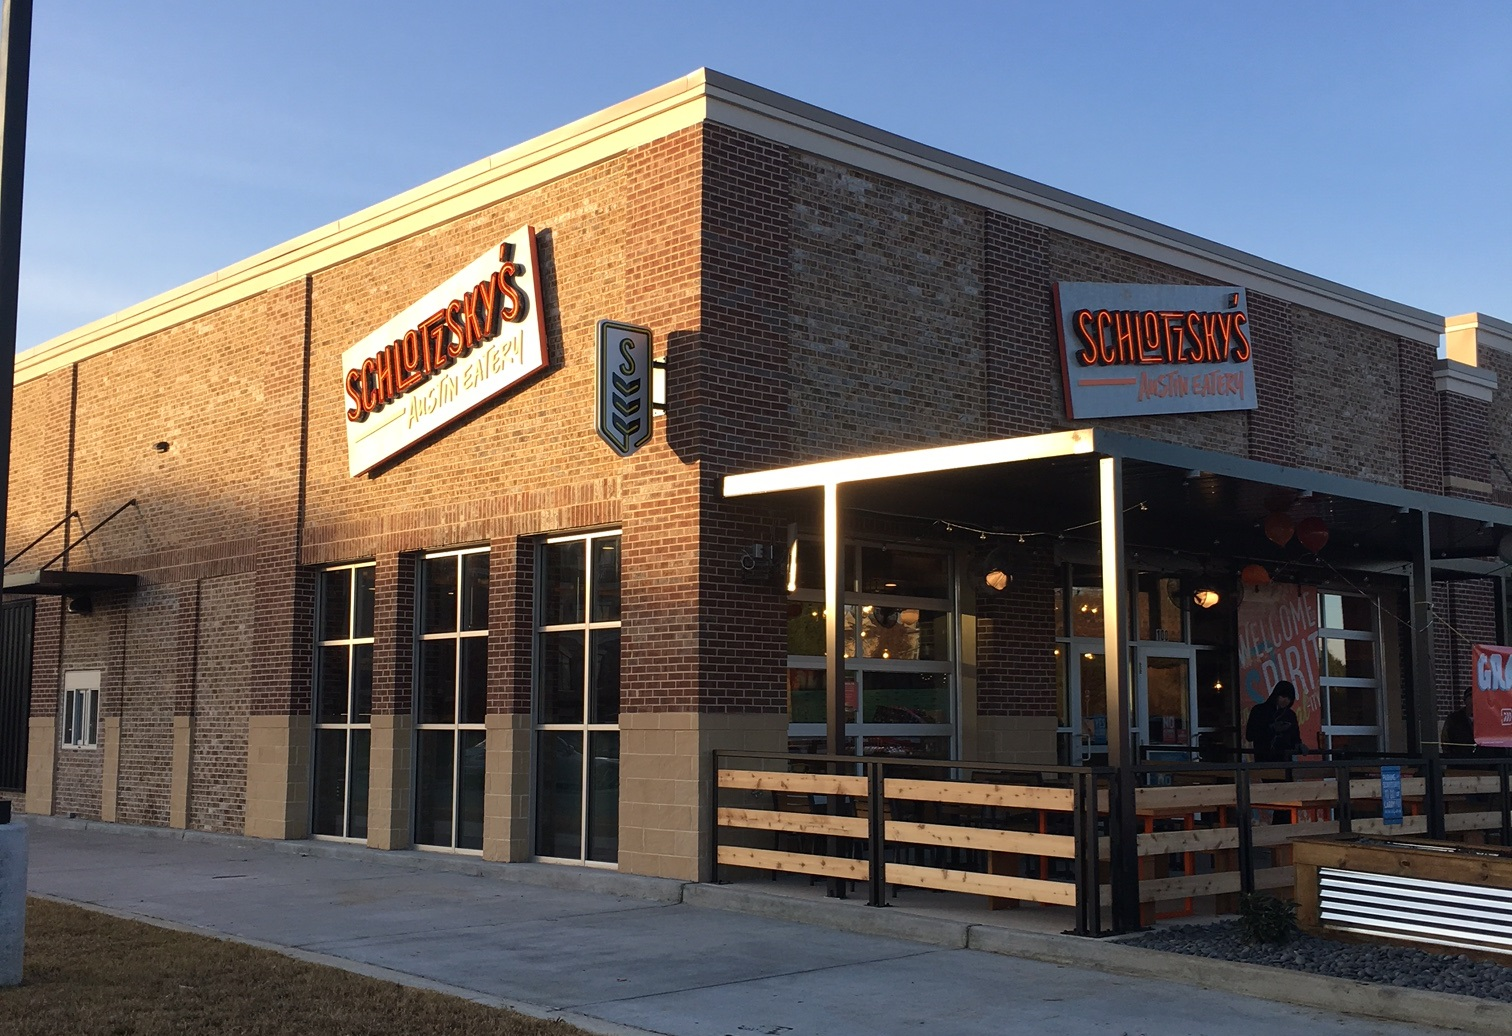 retail map with Schlotzsky E2 80 99s Austin Eatery Opens In Duluth  Ga on Por details in addition Contact us besides 2 Slovenska Posta likewise Trudy together with .